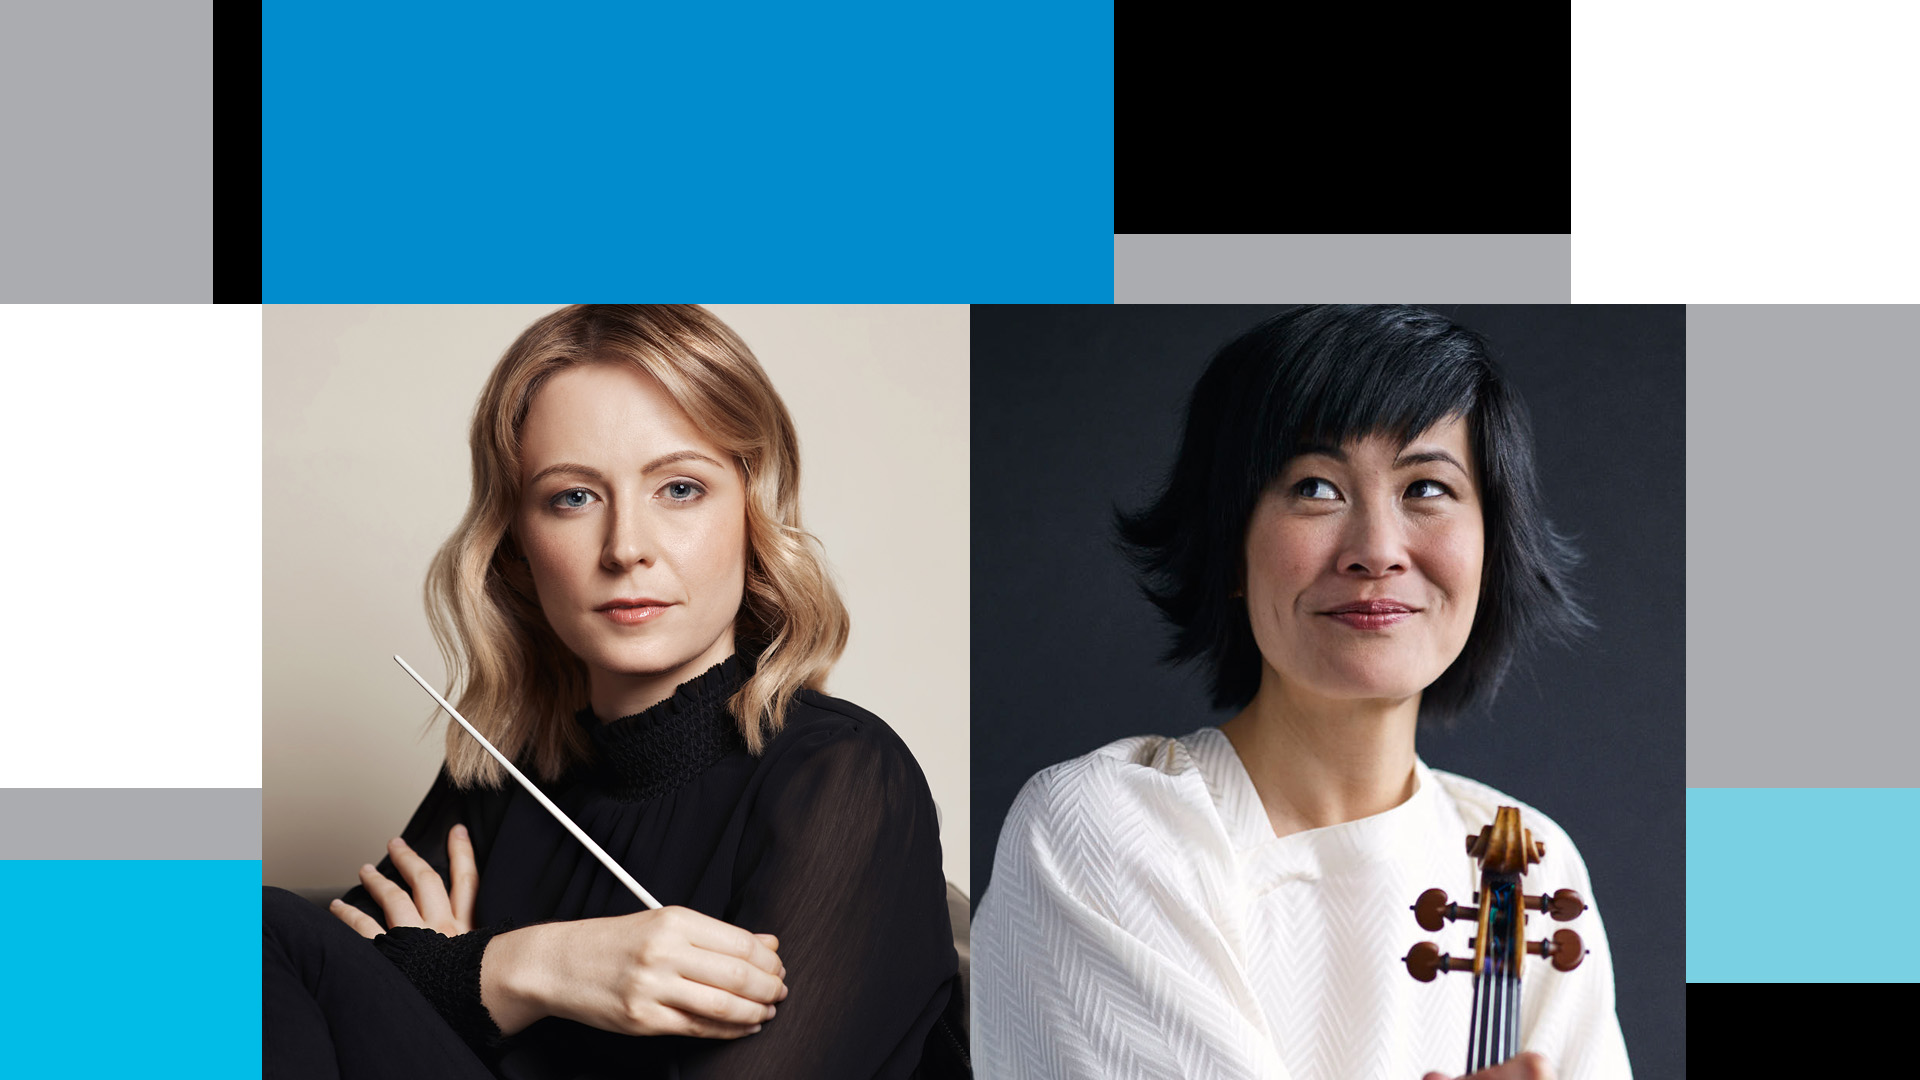 National Symphony Orchestra, Gemma New, Jennifer Koh, violin, Ralph Vaughan Williams, Missy Mazzoli, Jean Sibelius, capital one hall, capital one center, things to do in DC, Tysons, symphony, orchestra